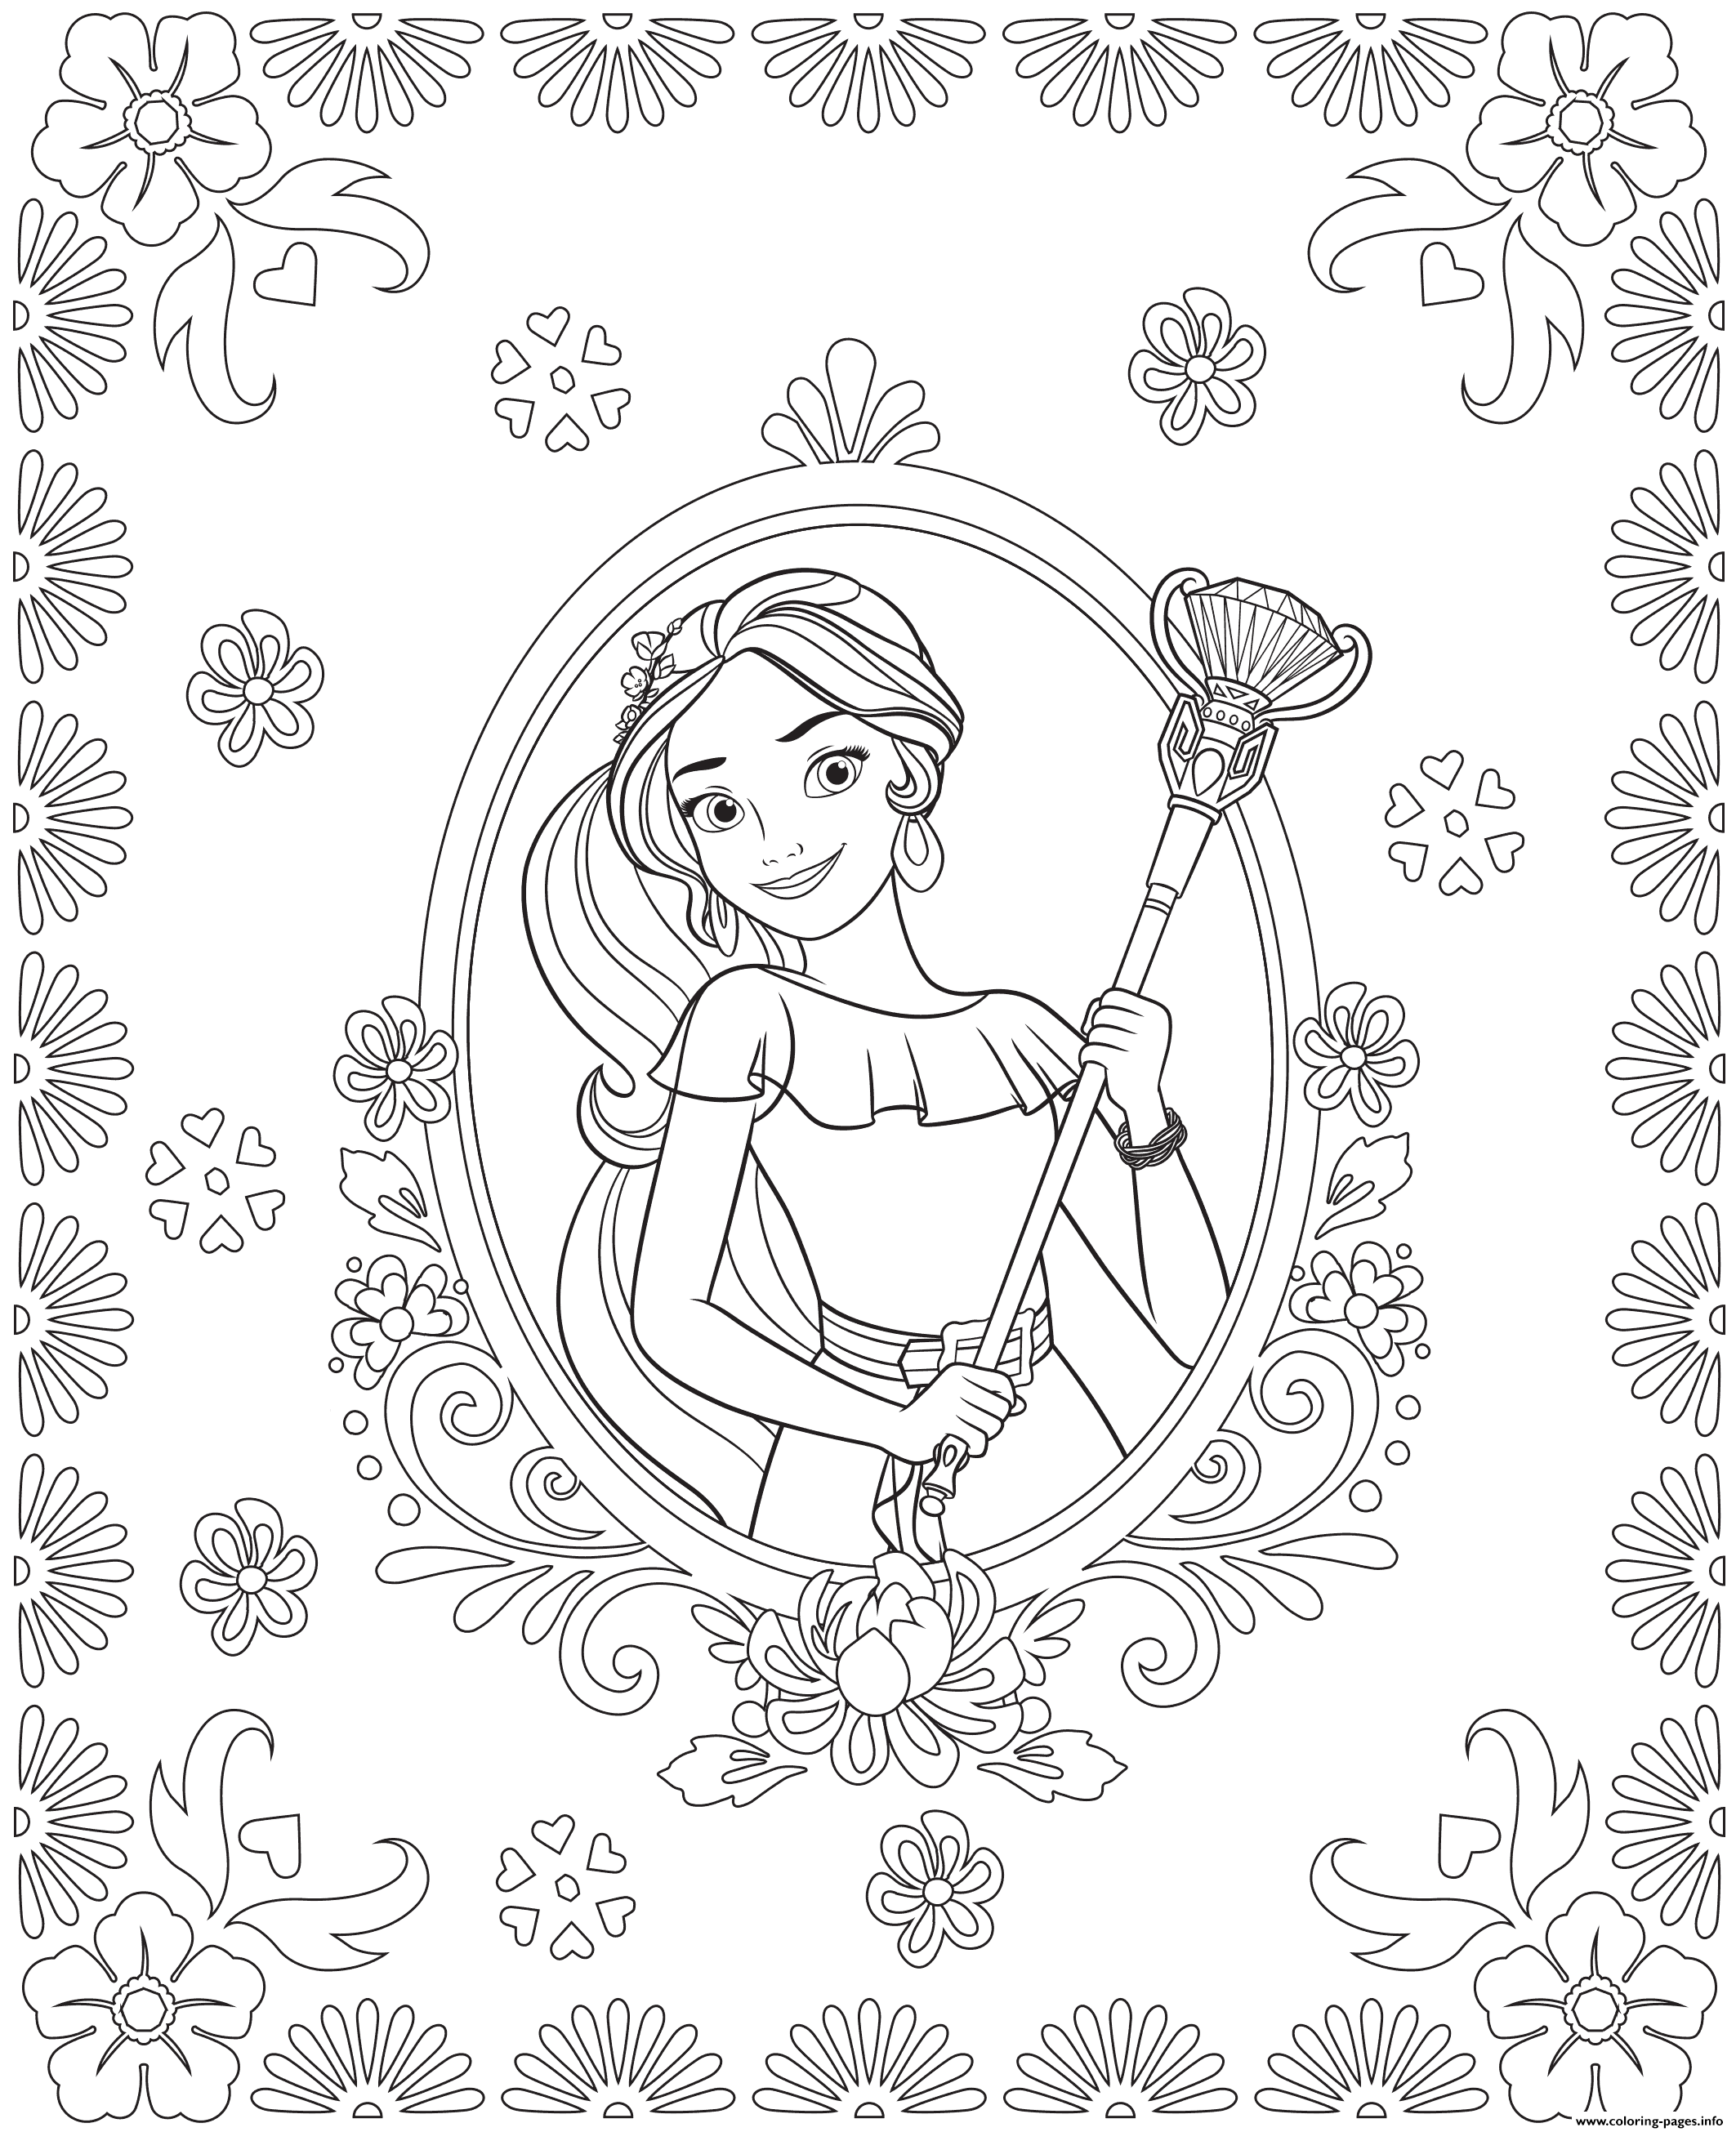 Free Elena Avalor coloring page to print and color